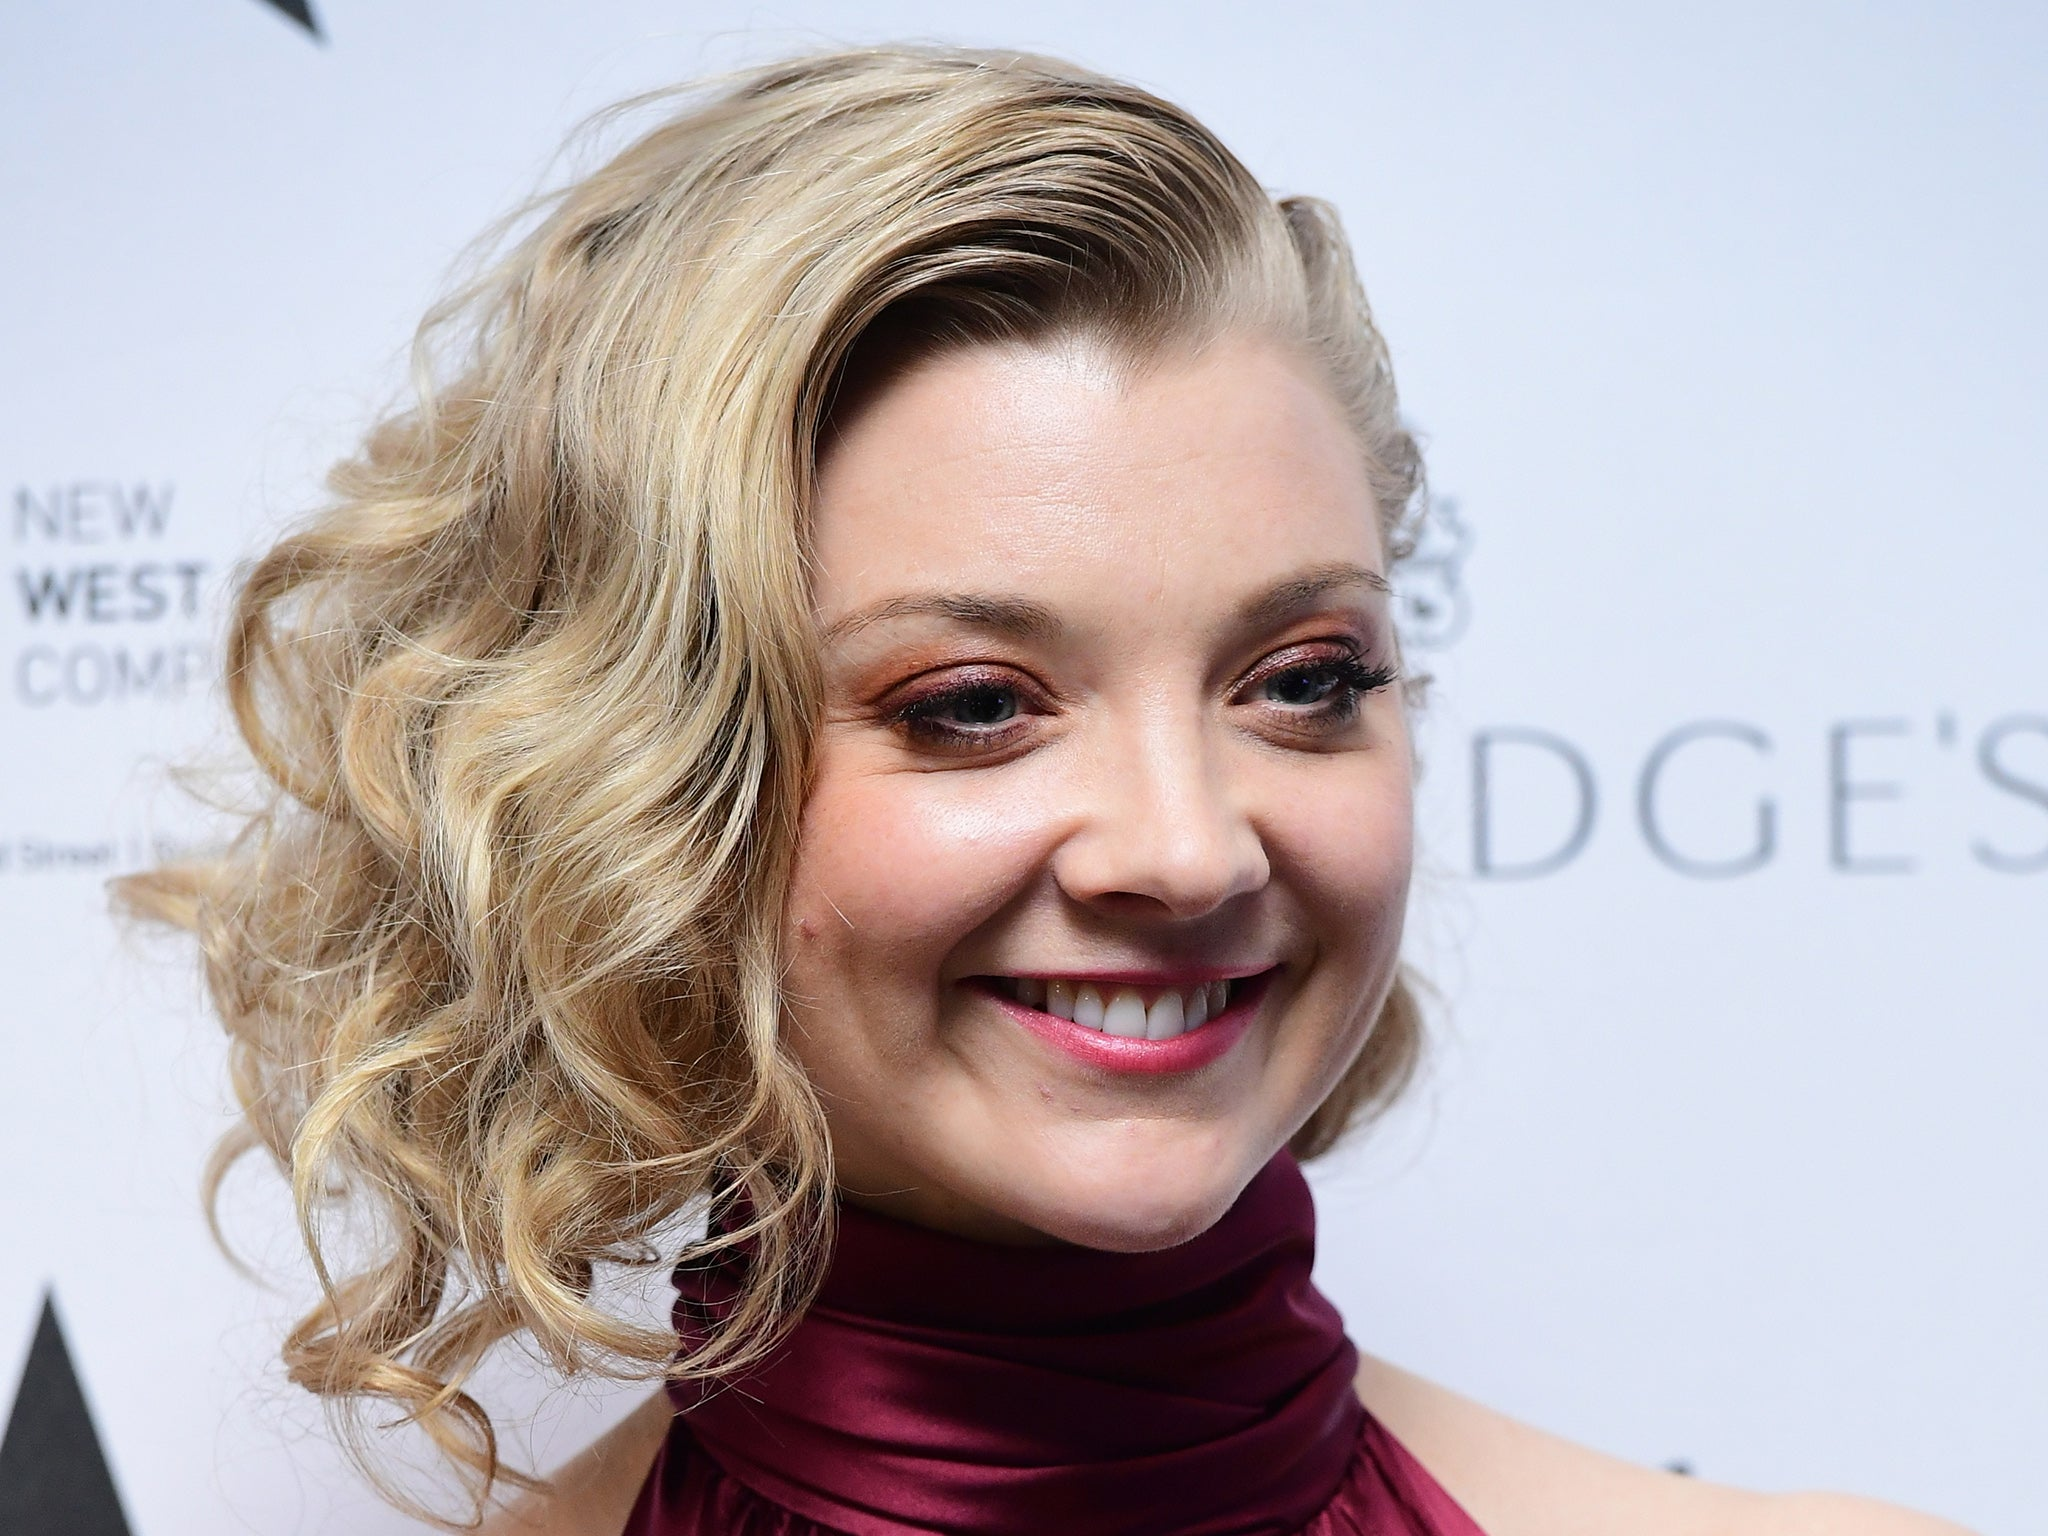 Photo Natalie Dormer nudes (37 photos), Tits, Paparazzi, Instagram, panties 2015